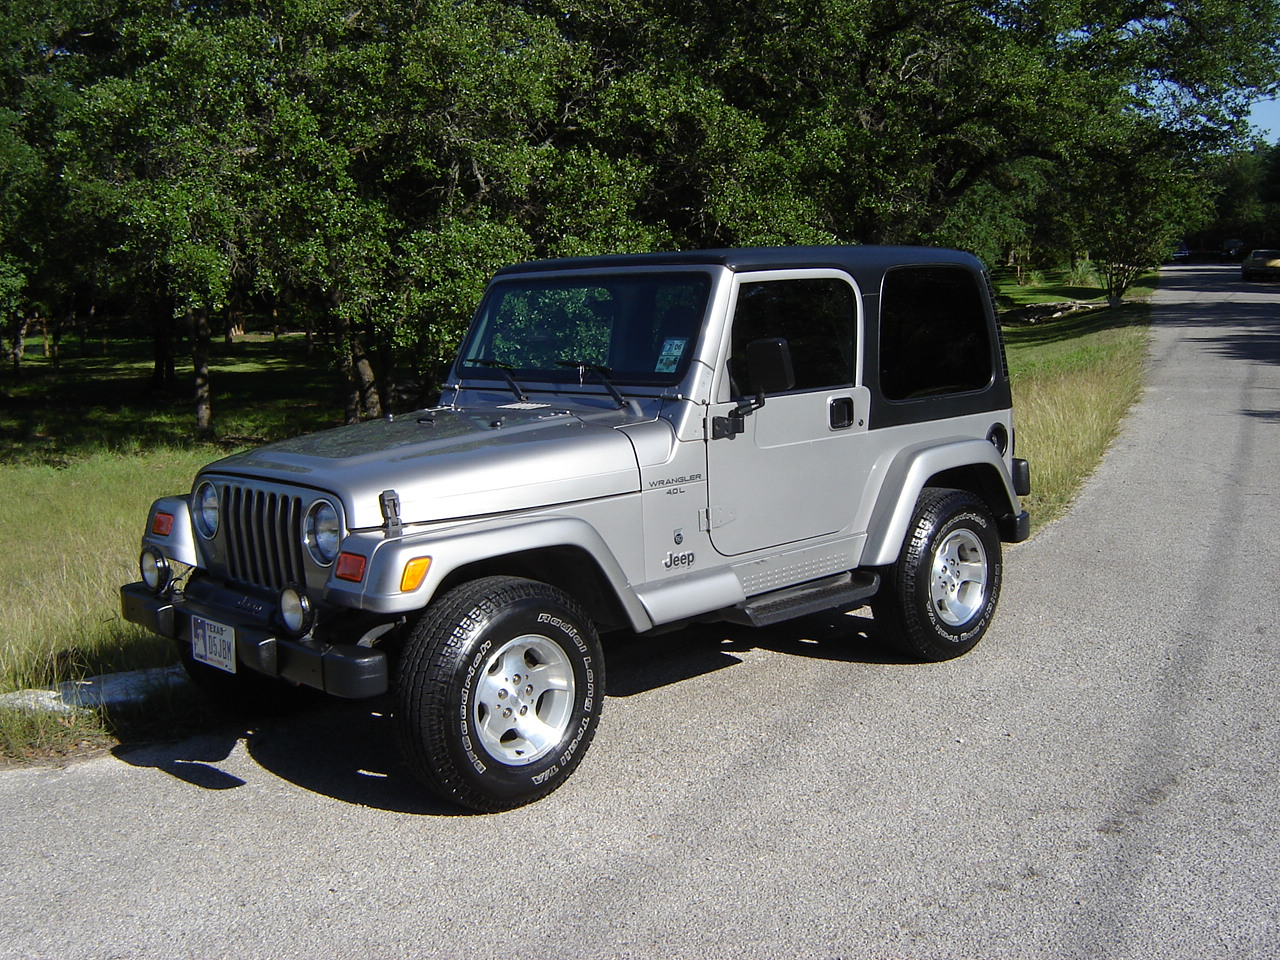 jk jeep wrangler 02 sensor location  jk  free engine image